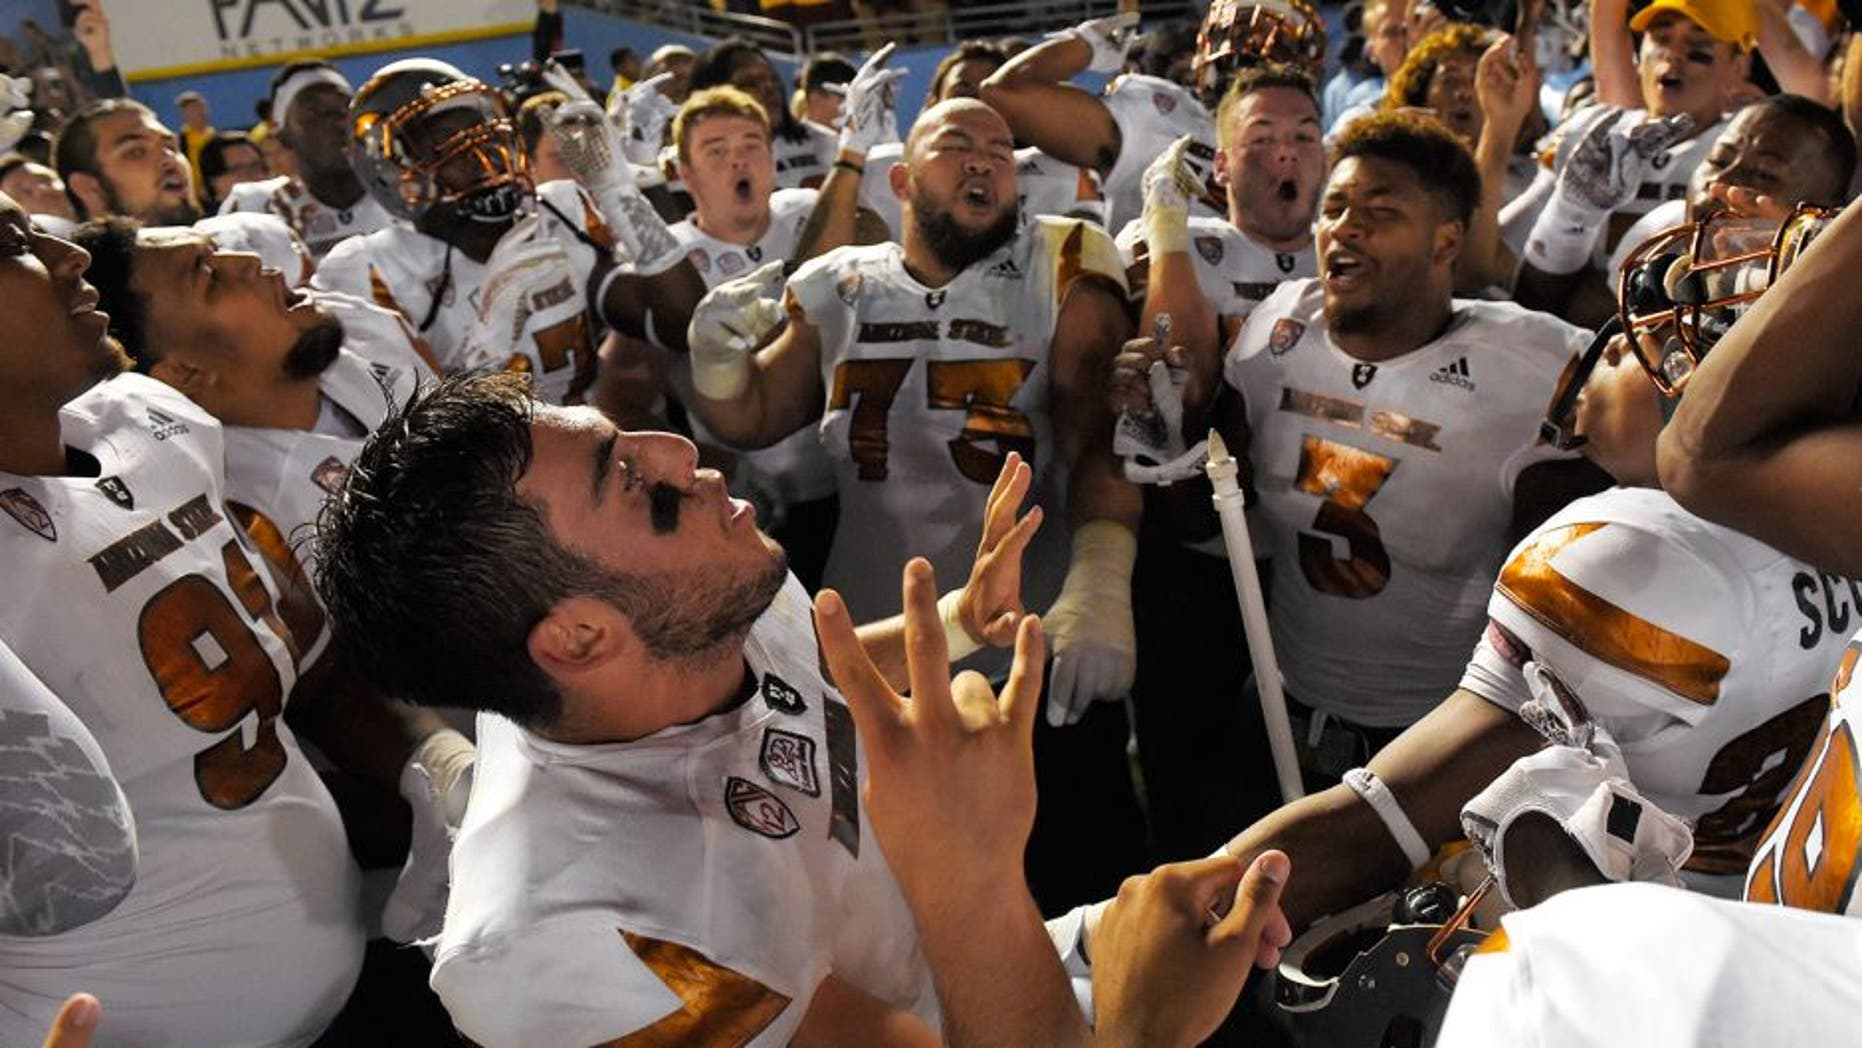 Arizona State quarterback Mike Bercovici, below, celebrates with teammate after they defeated UCLA in an NCAA college football game, Saturday, Oct. 3, 2015, in Pasadena, Calif. Arizona State won 38-23. (AP Photo/Mark J. Terrill)